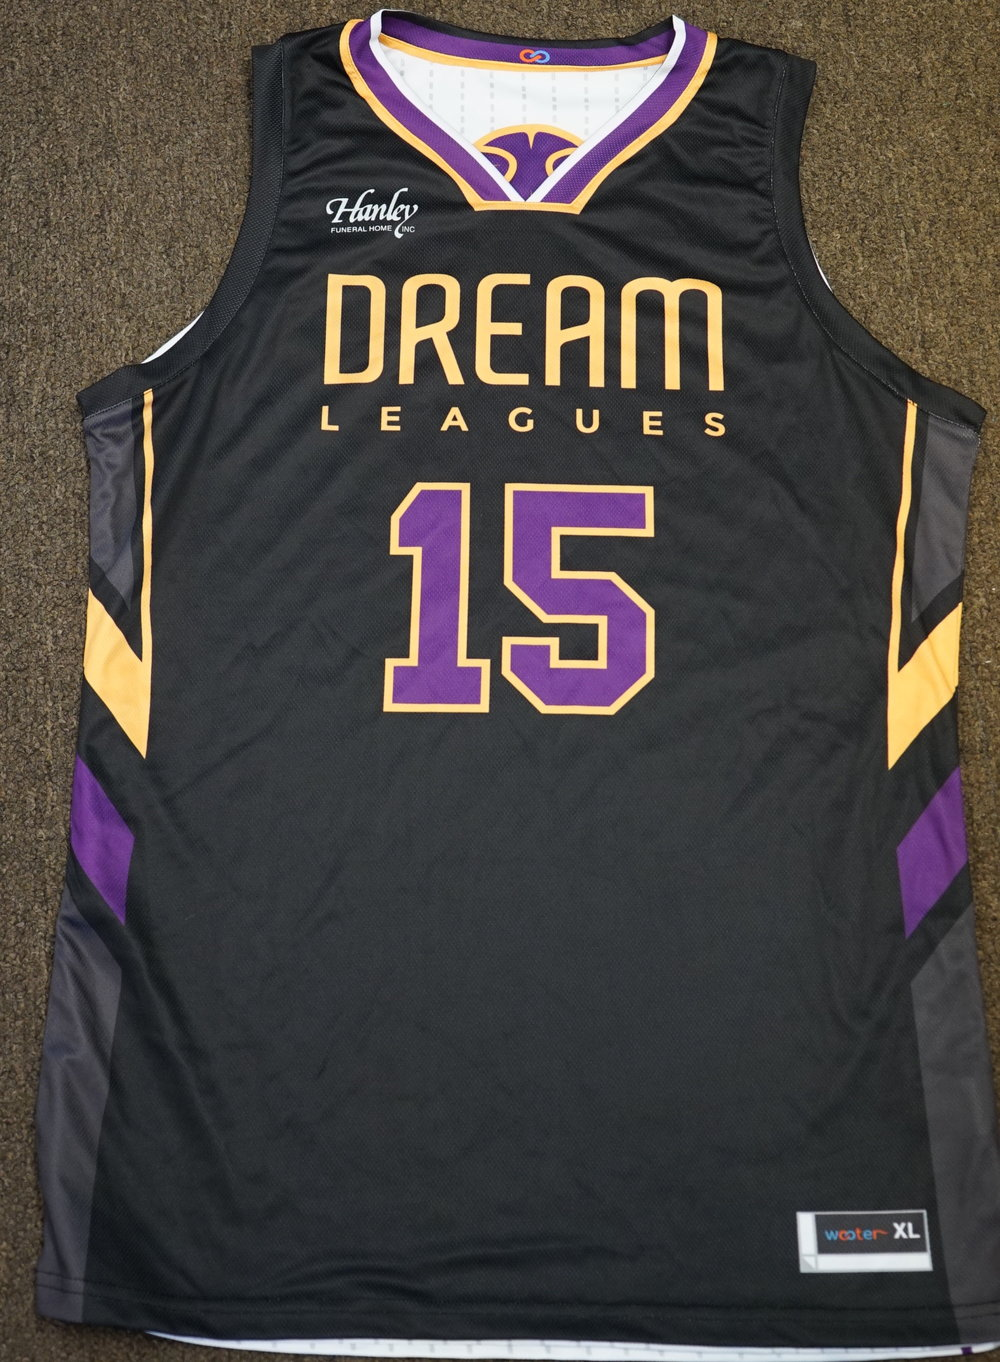 DREAM LEAGUES White Purple Black and Yellow Baseball Uniforms, Jerseys